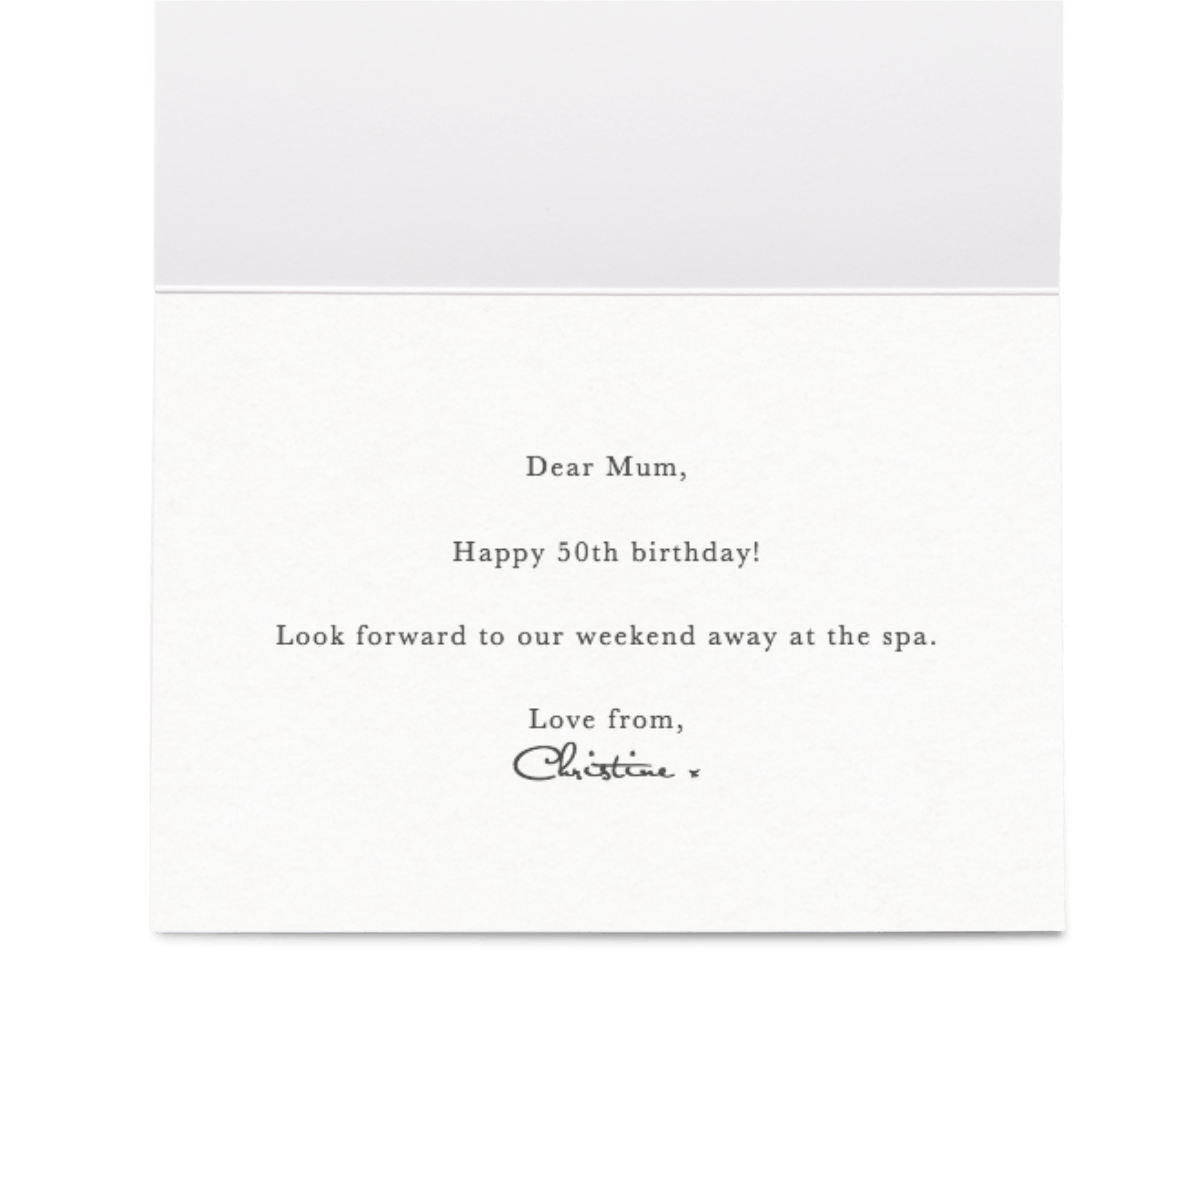 Https%3a%2f%2fwww.papier.com%2fproduct image%2f33040%2f20%2ffloral birthday yellow 8274 inside 1516184110.png?ixlib=rb 1.1